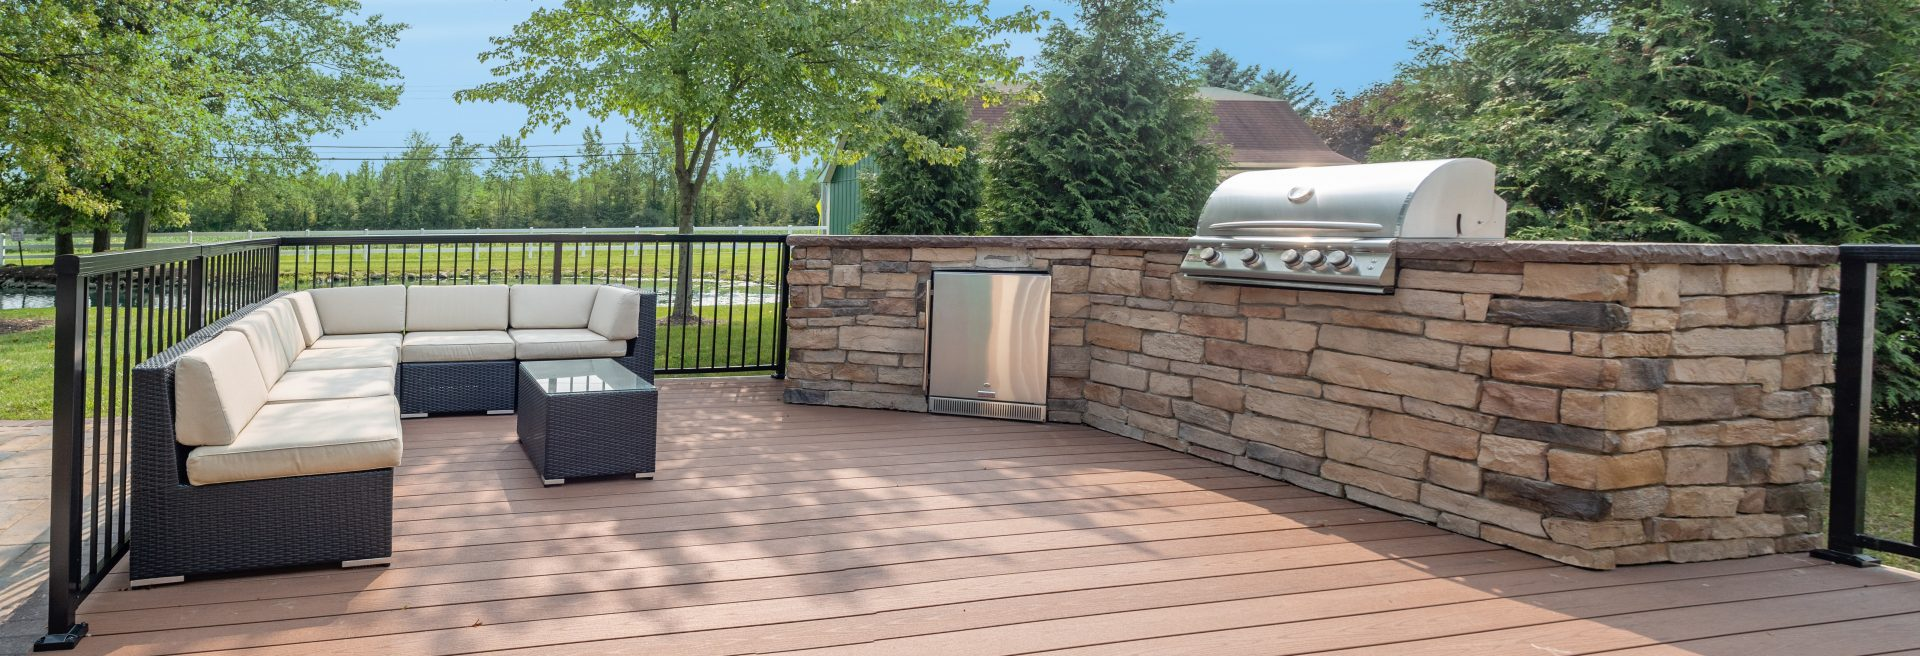 Retouch photo bbq grill patio